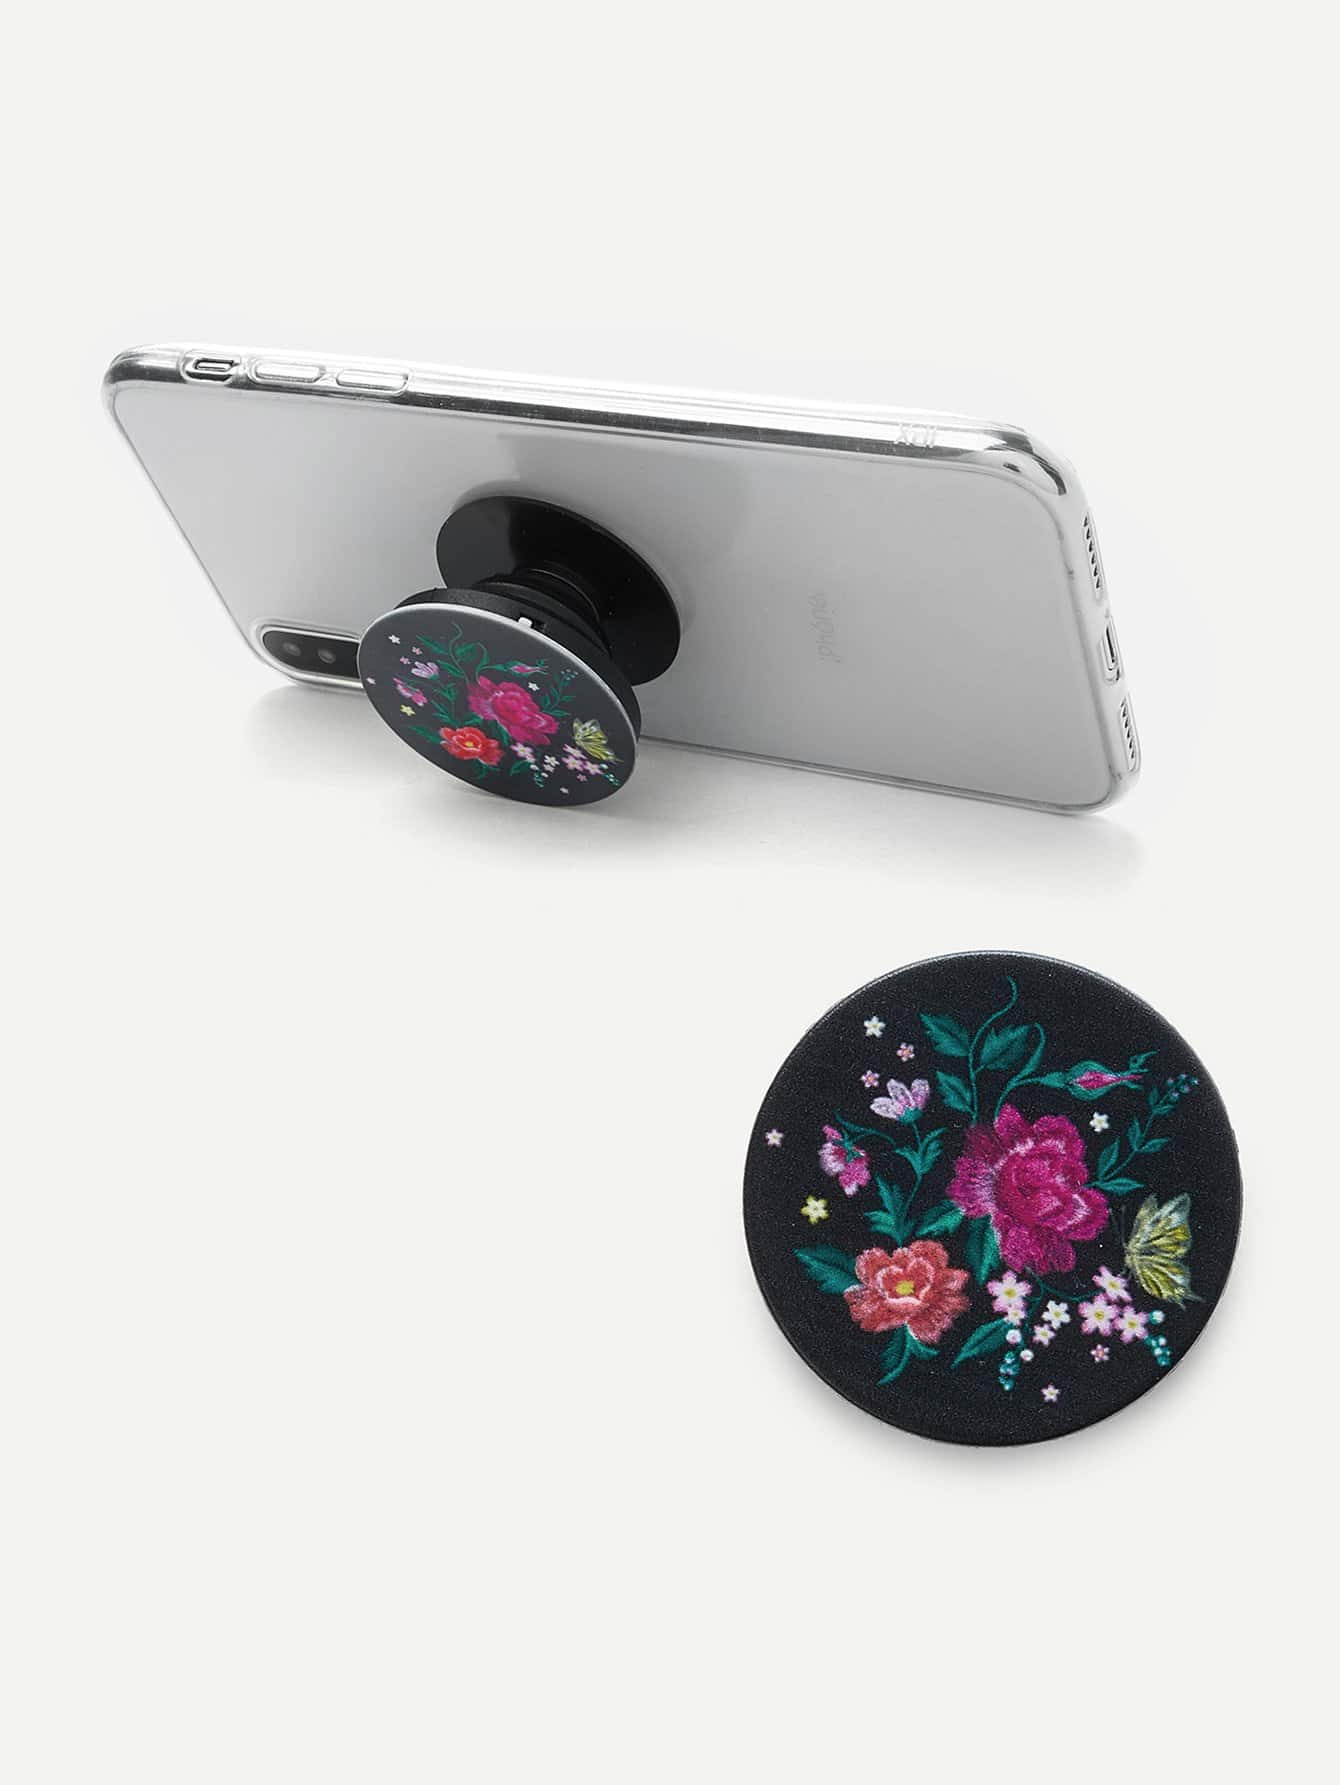 Floral Phone Gasbag Phone Holder avocado pattern gasbag phone holder